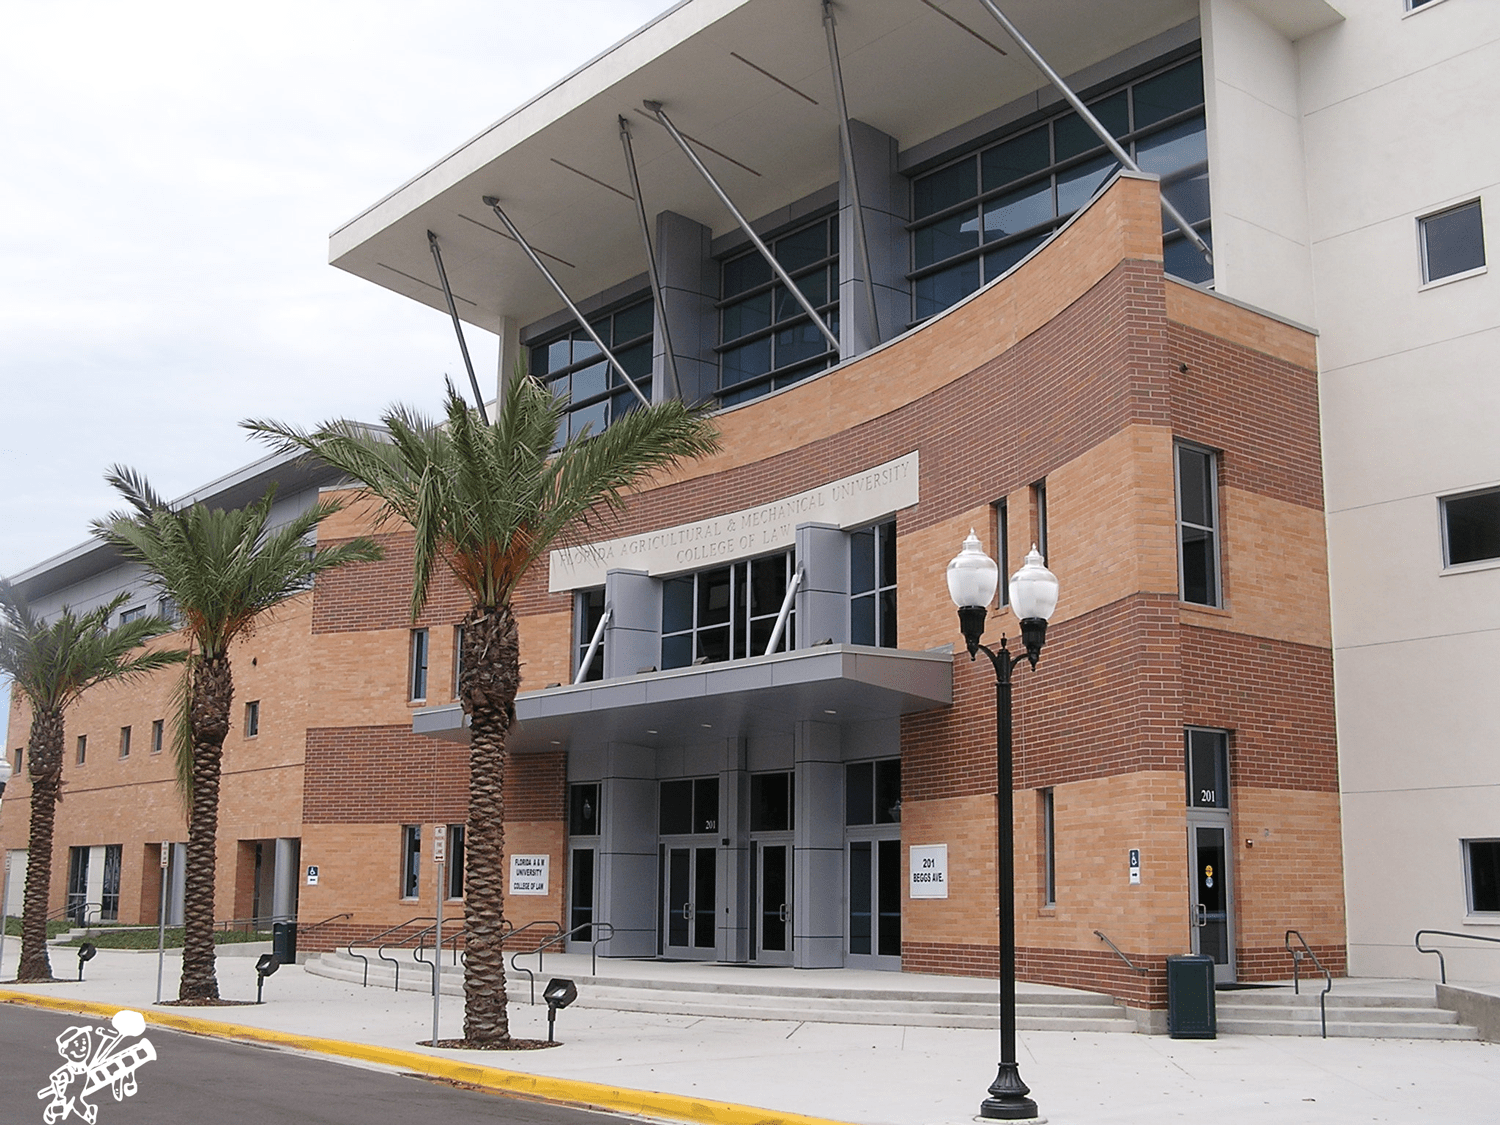 FAMU Law School